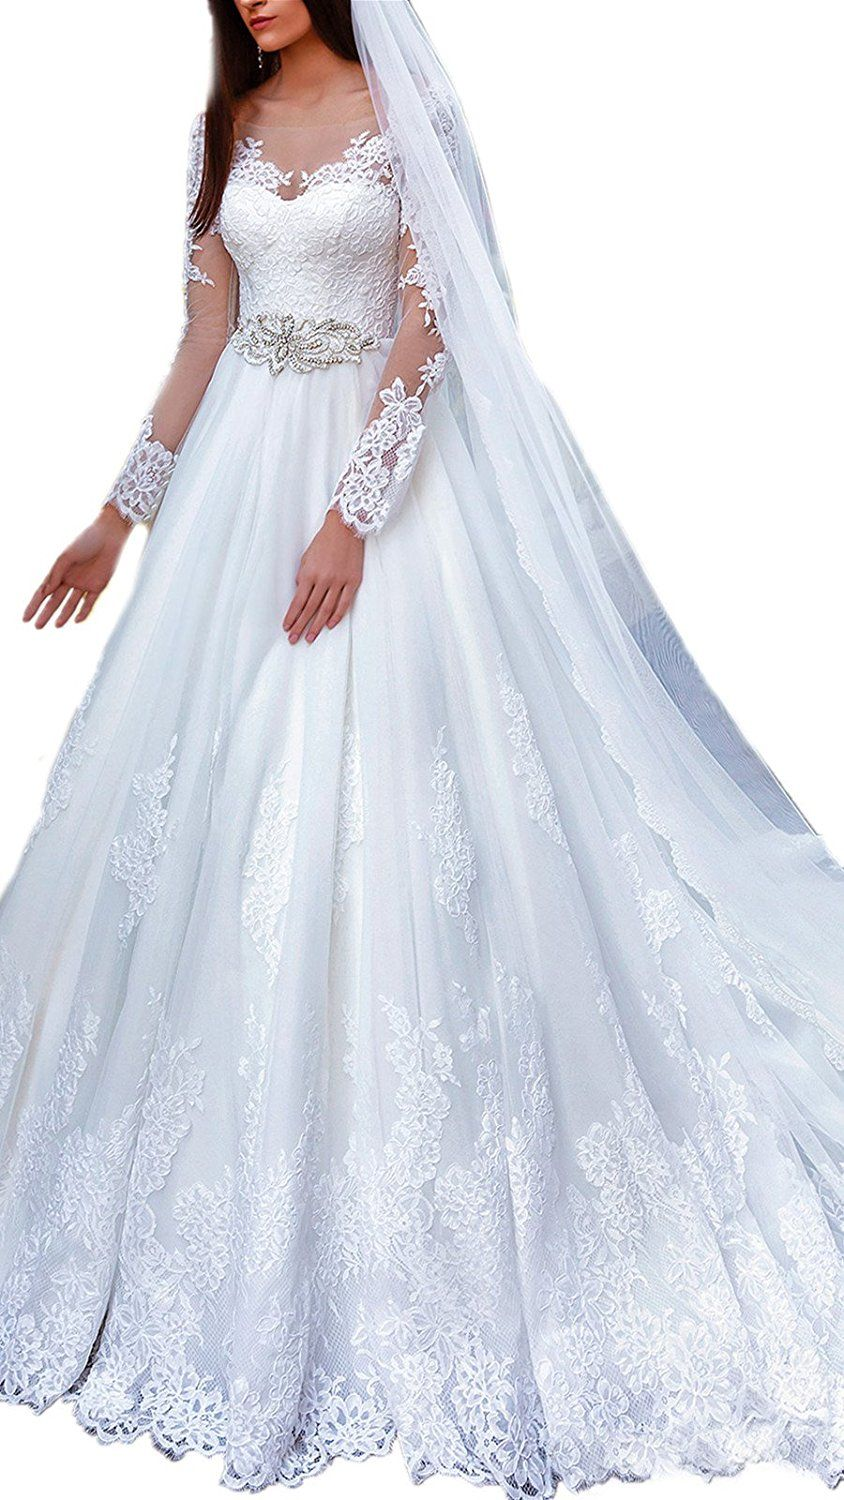 Drehouse womenus vintage lace long sleeve wedding dresses with court